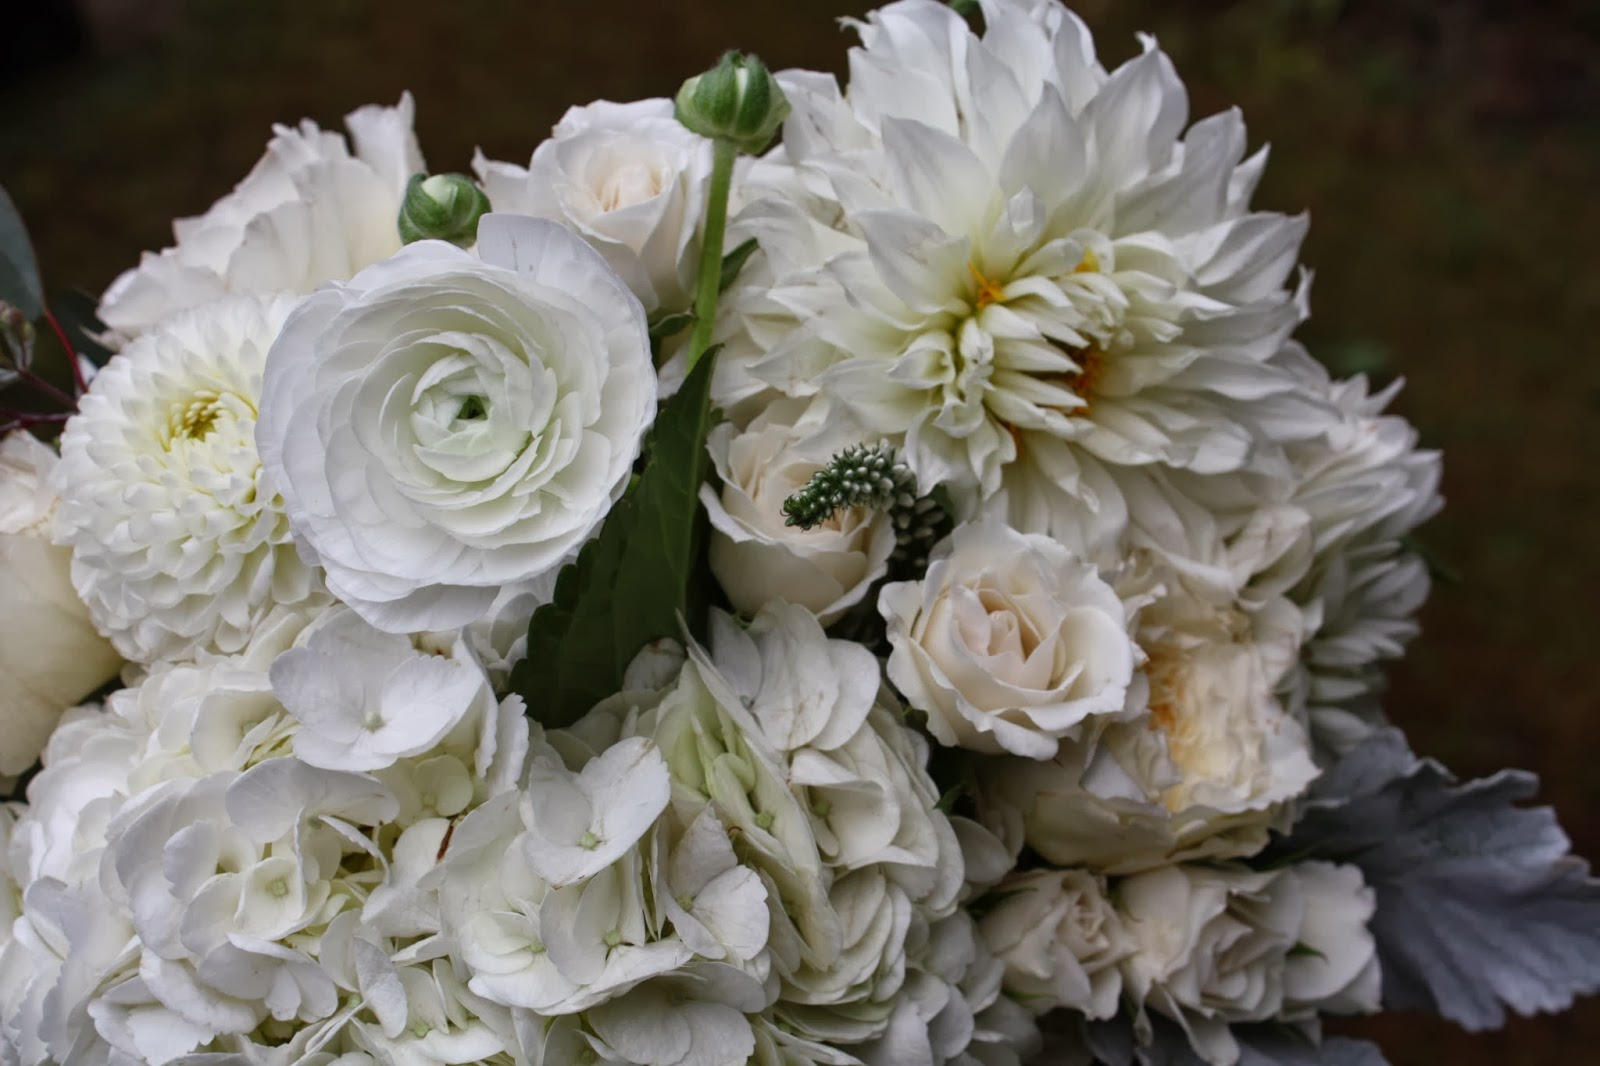 Googlier garland search date 20180216 a bit of the babies breath garland we made for the birch tree chuppah fandeluxe Images